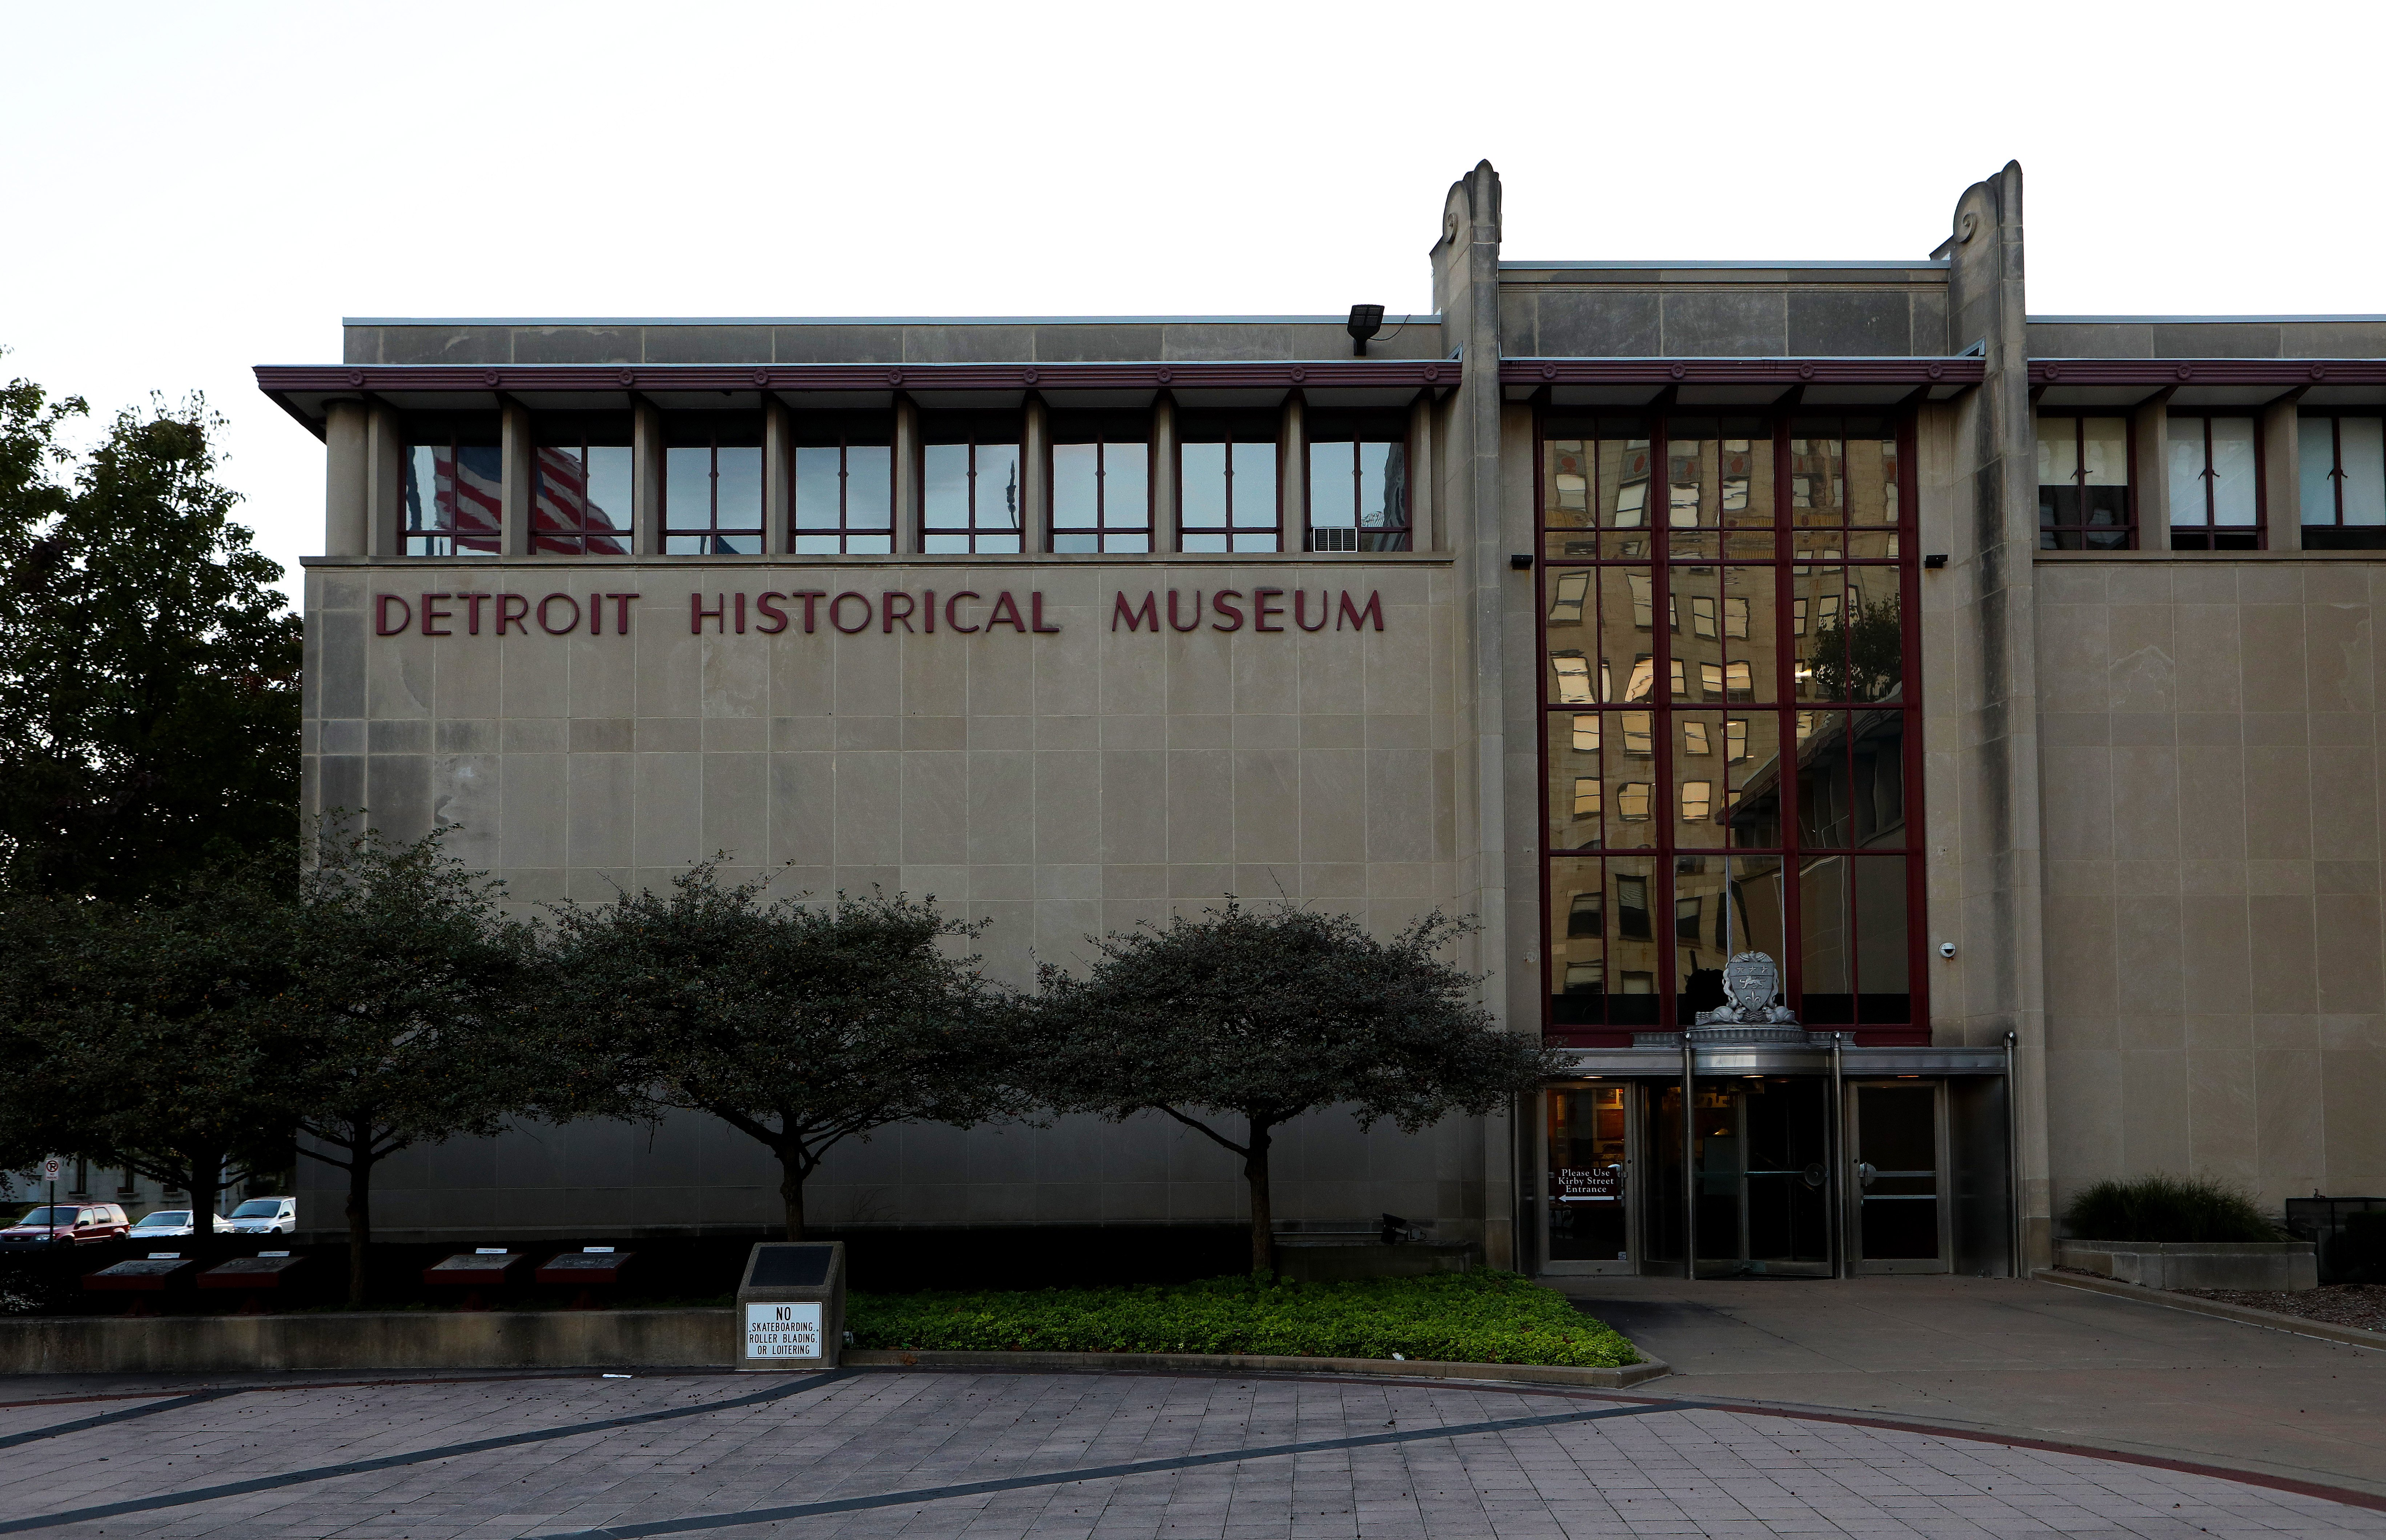 """Exterior of a concrete building that says """"Detroit Historical Museum"""" in red lettering."""